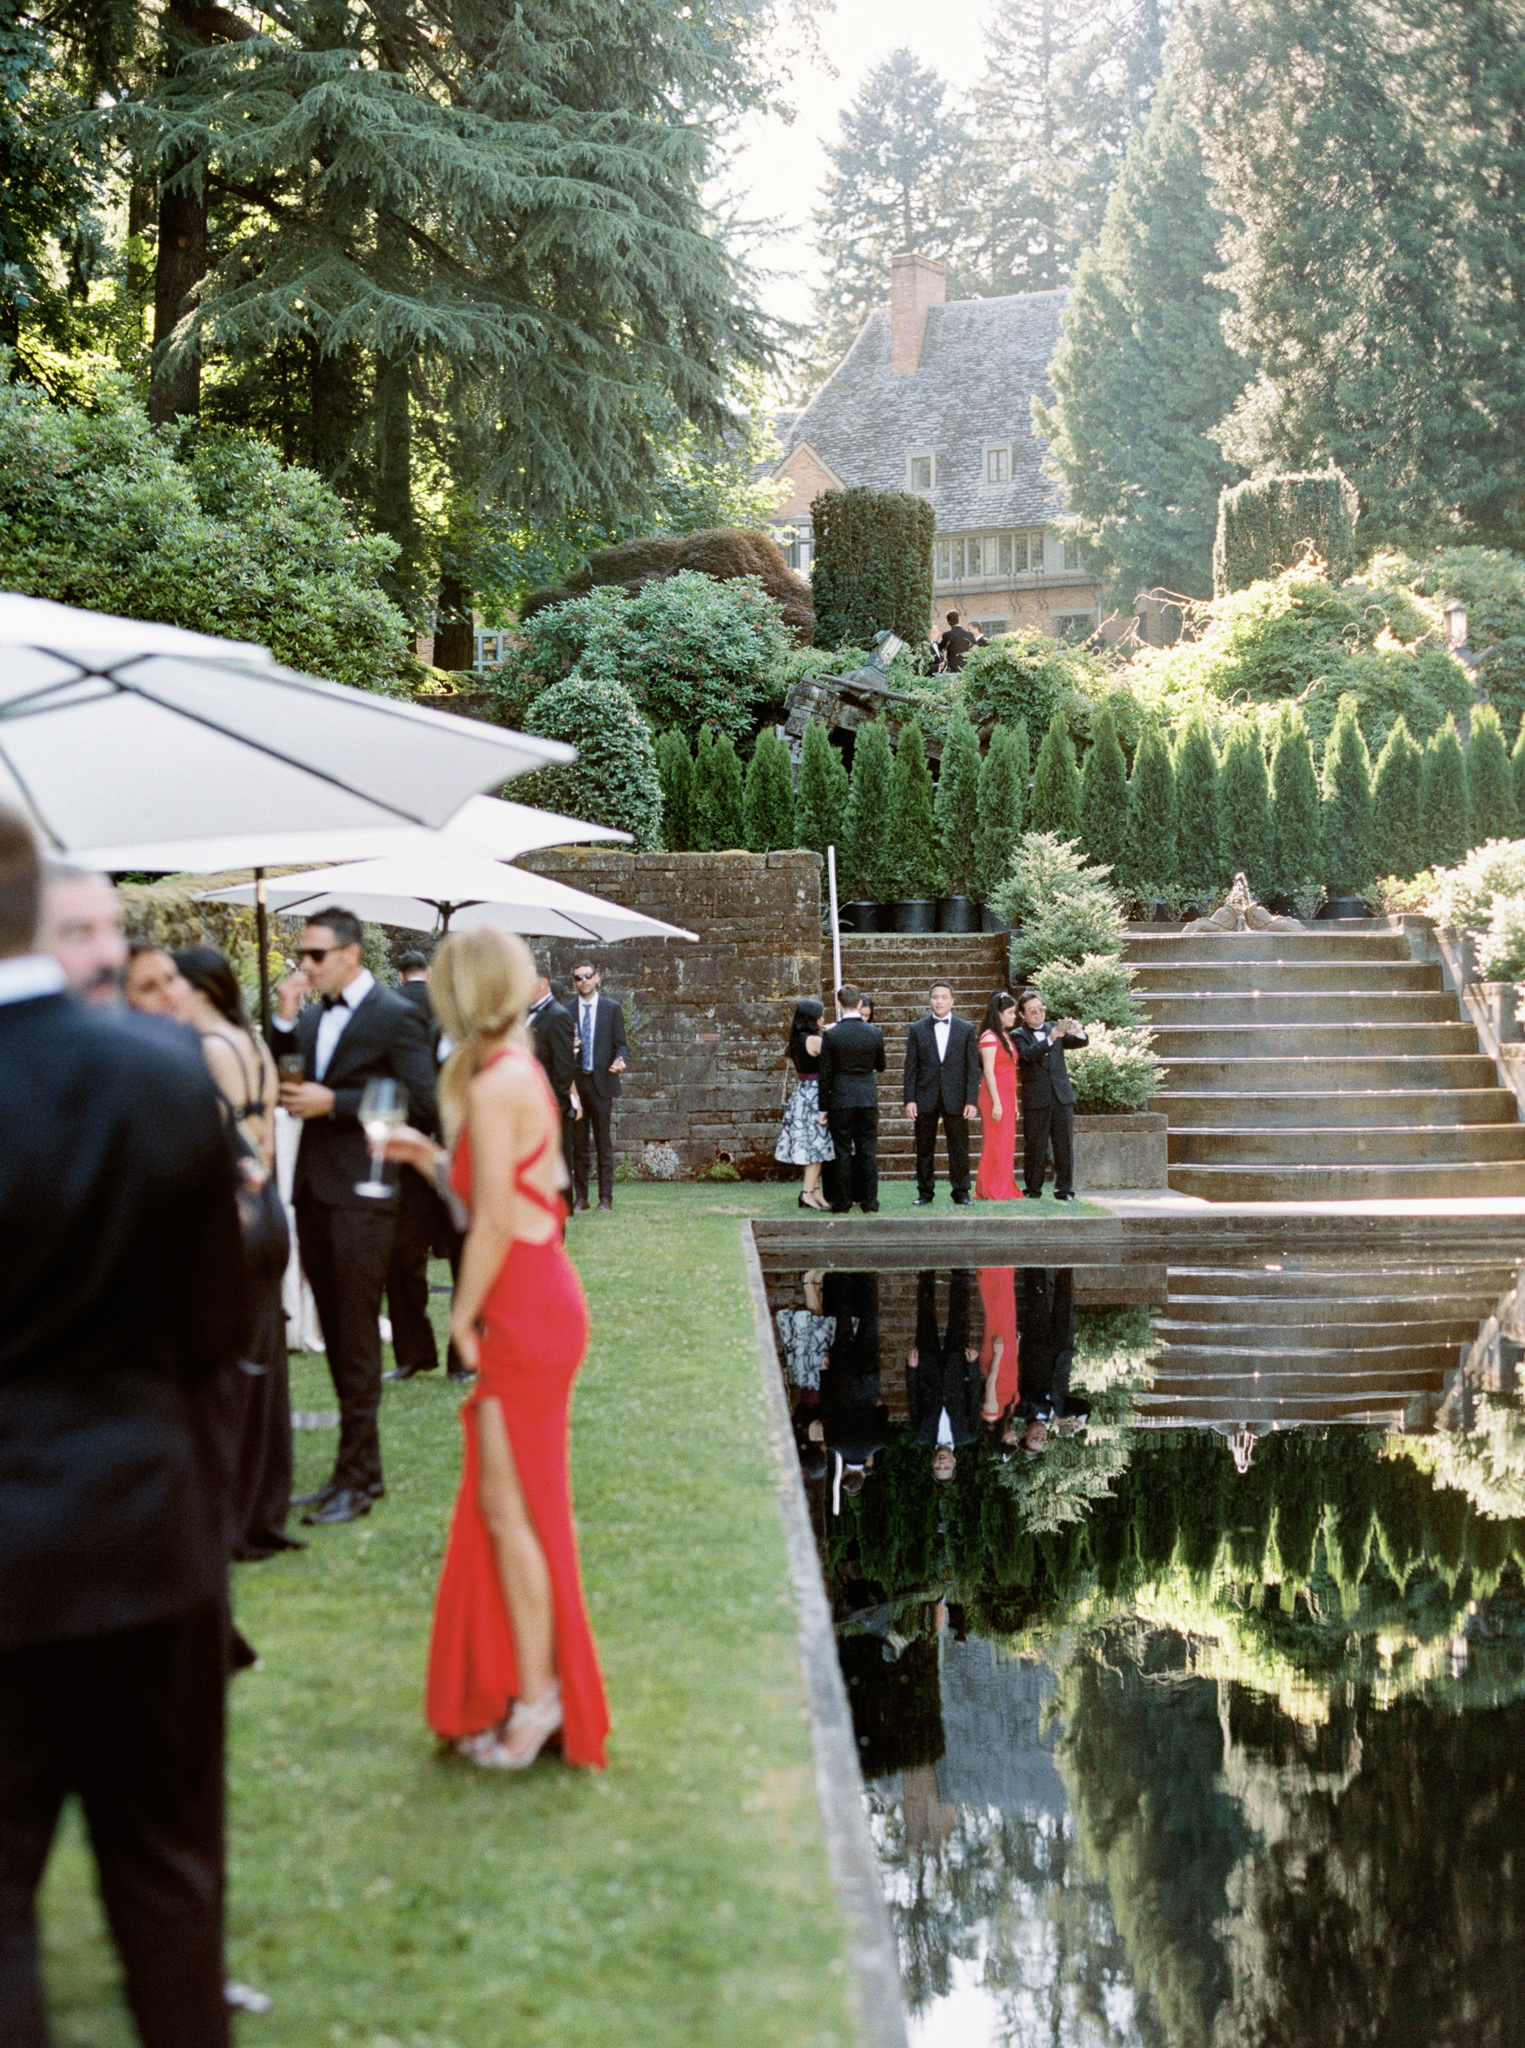 156OutliveCreative_Travel_Photographer_Videographer_Lewis&Clark_Oregon_Elegant_BlackTie_Destination_Wedding.jpg